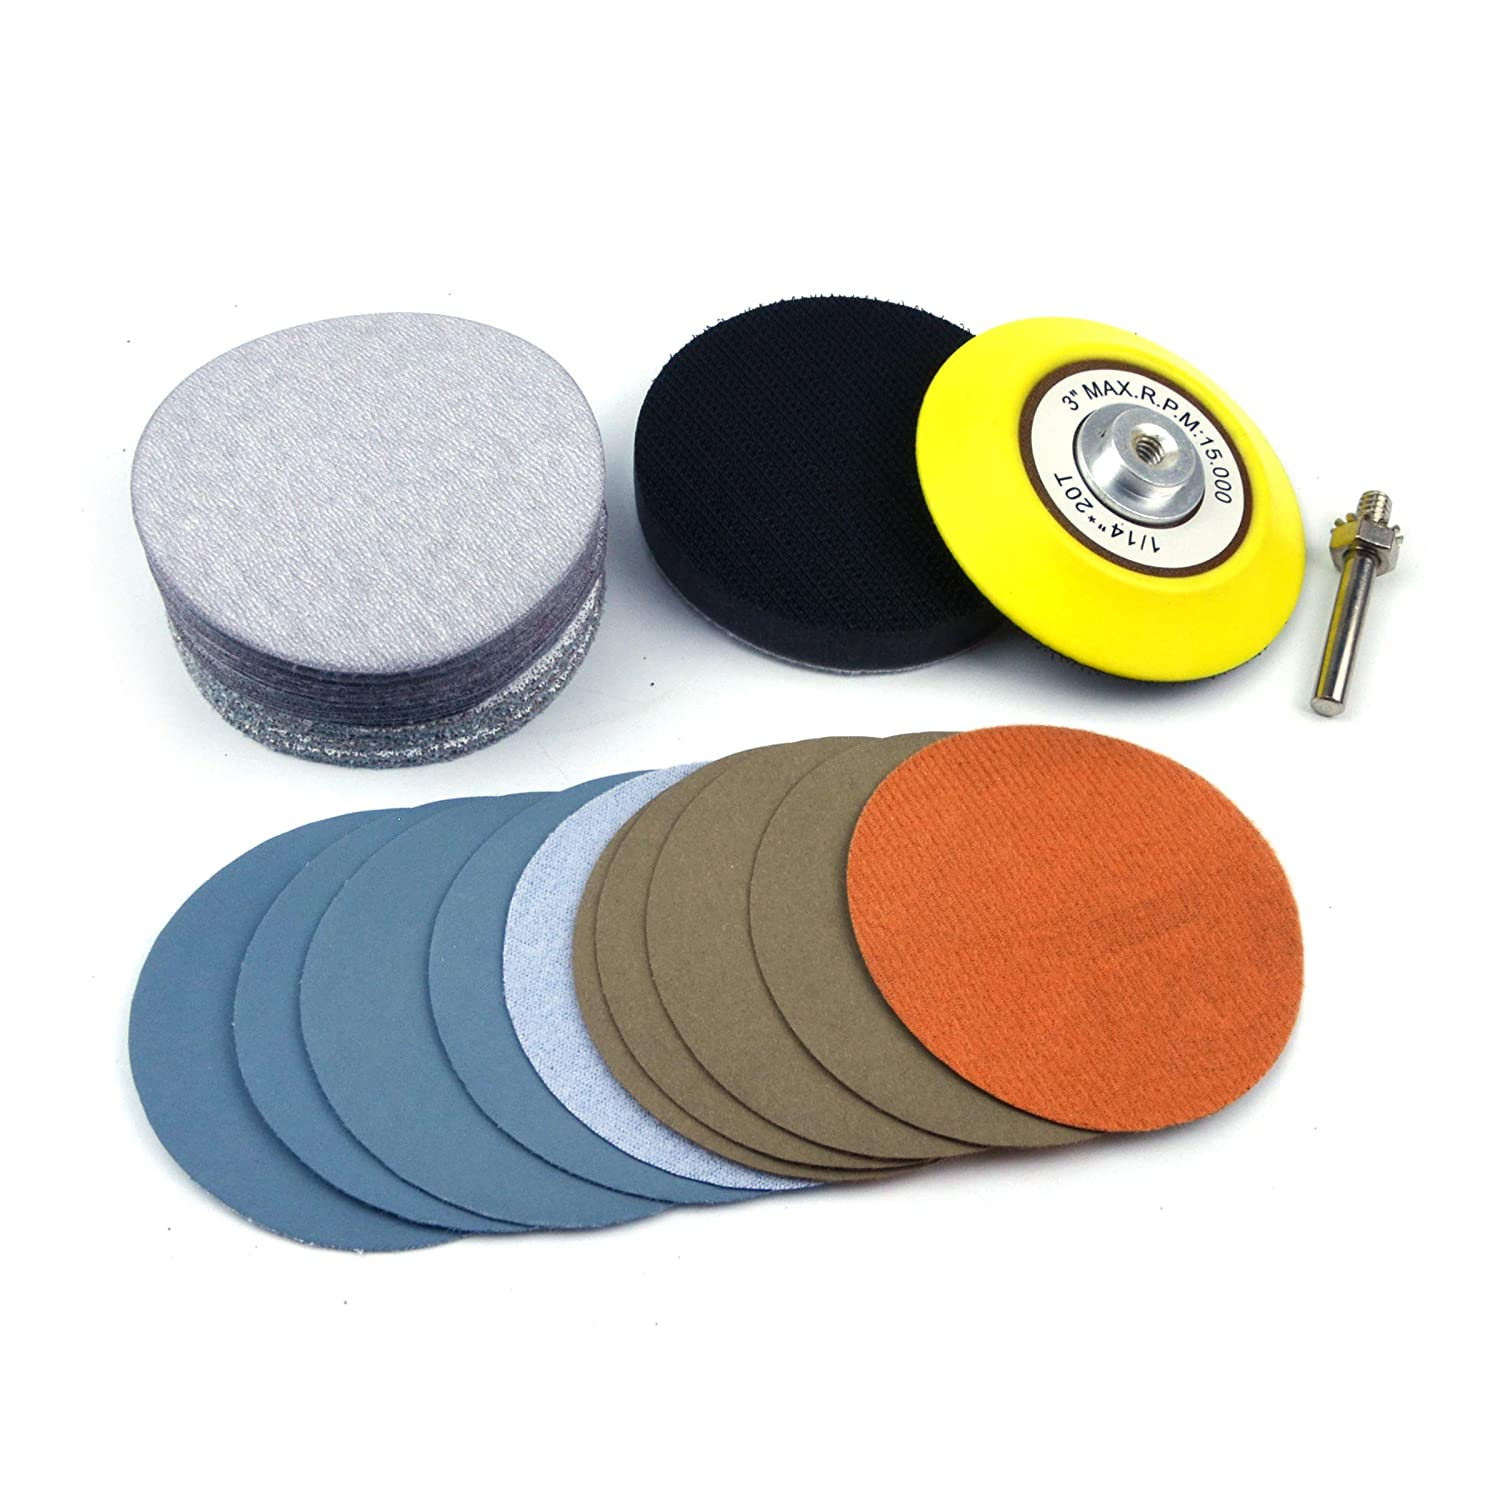 e-ROOKIE 3 inch Multiple Grits Aluminum Oxide Dry & Wet/Dry Hook Loop Sanding Discs a 1/4 inch Shank Backing Pad + Soft Foam Buffering Pad, 5-Pieces Each 60, 240, 600, 1000, 5000 10000 Grits